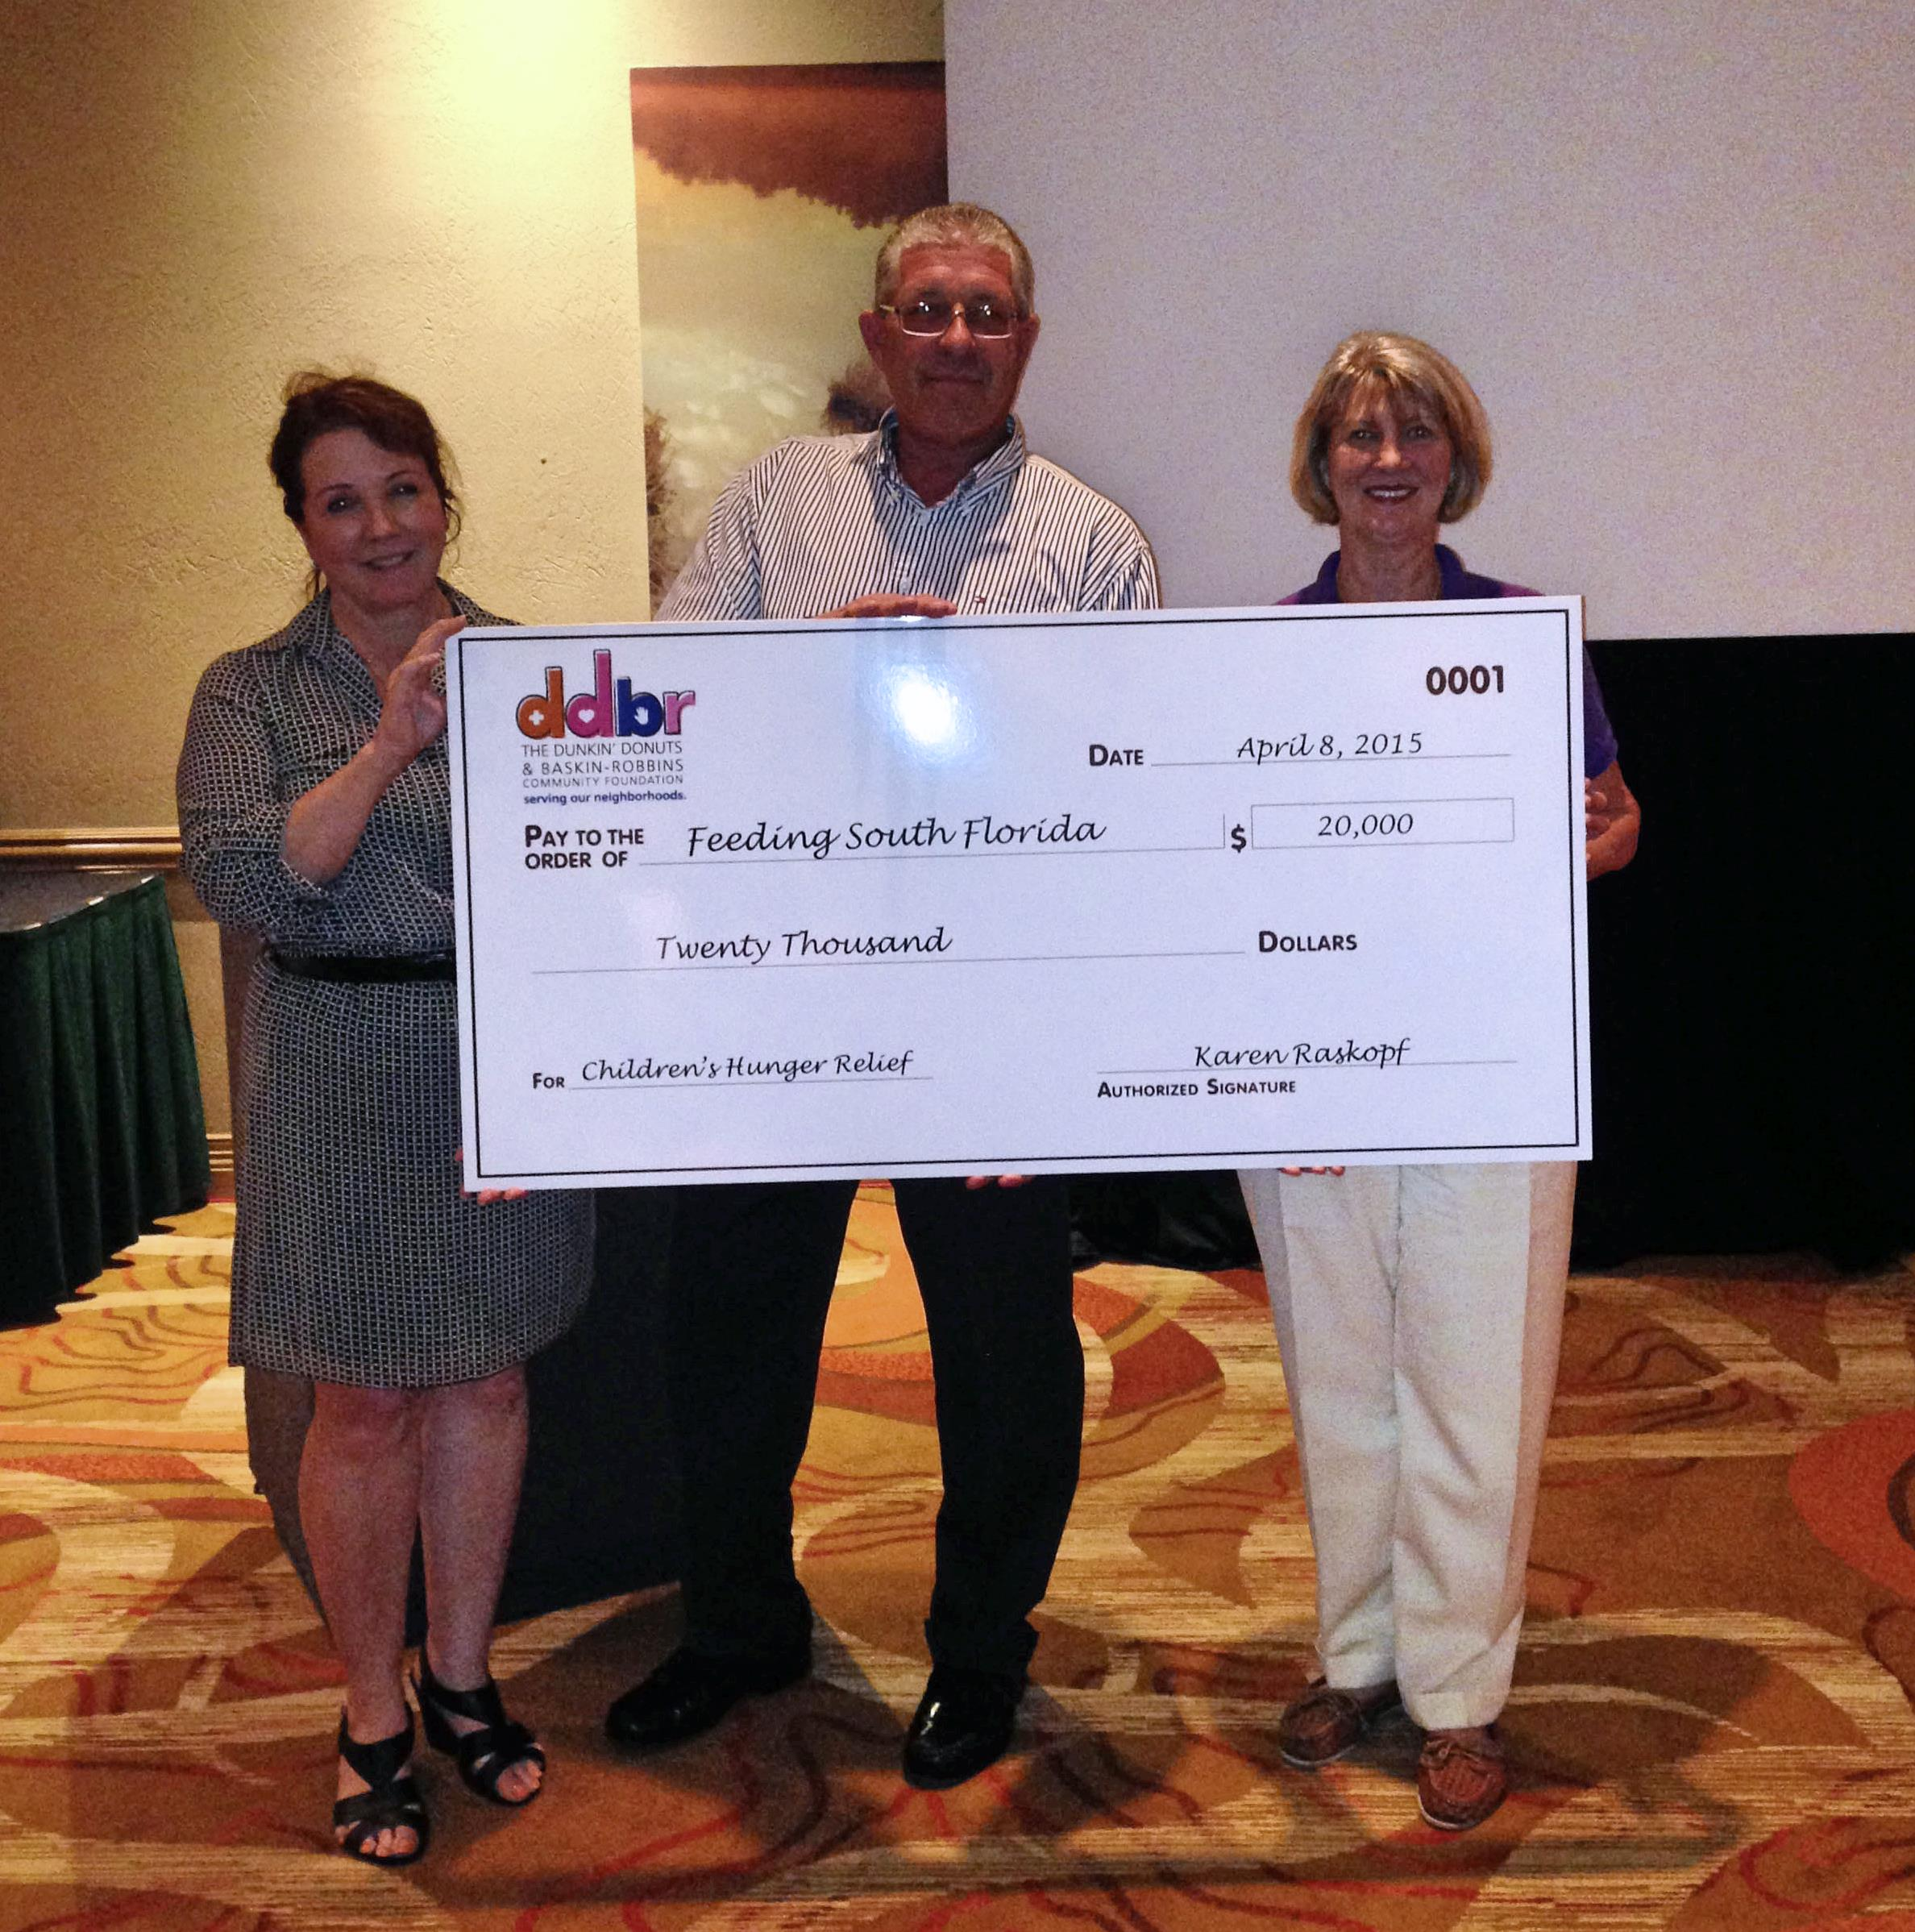 Feeding South Florida Receives a $20,000 Grant from The Dunkin' Donuts & Baskin-Robbins Community Foundation